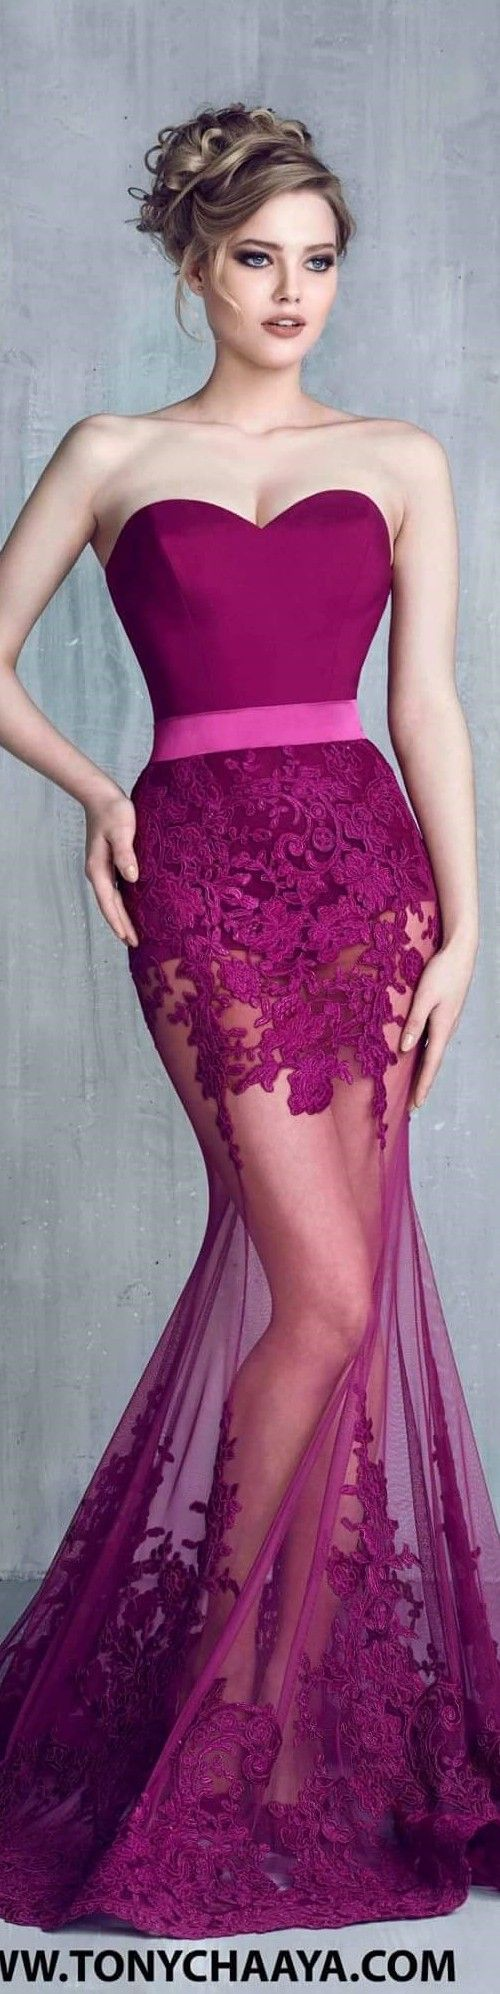 Tony Chaaya couture 2016 women fashion outfit clothing style apparel /roressclothes/ closet ideas